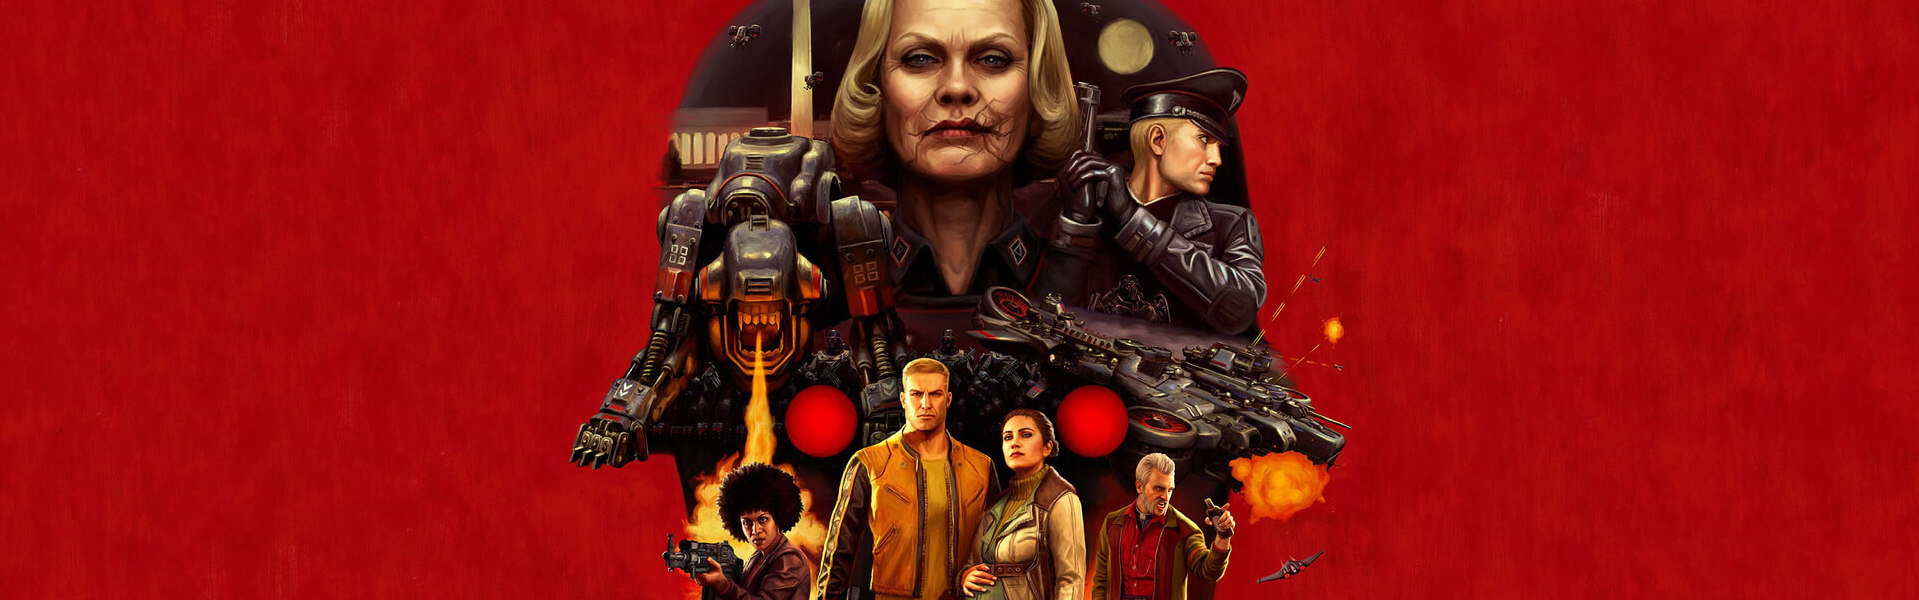 Wolfenstein II: The New Colossus - The Freedom Chronicles: Episode Zero (DLC) Steam Key GLOBAL